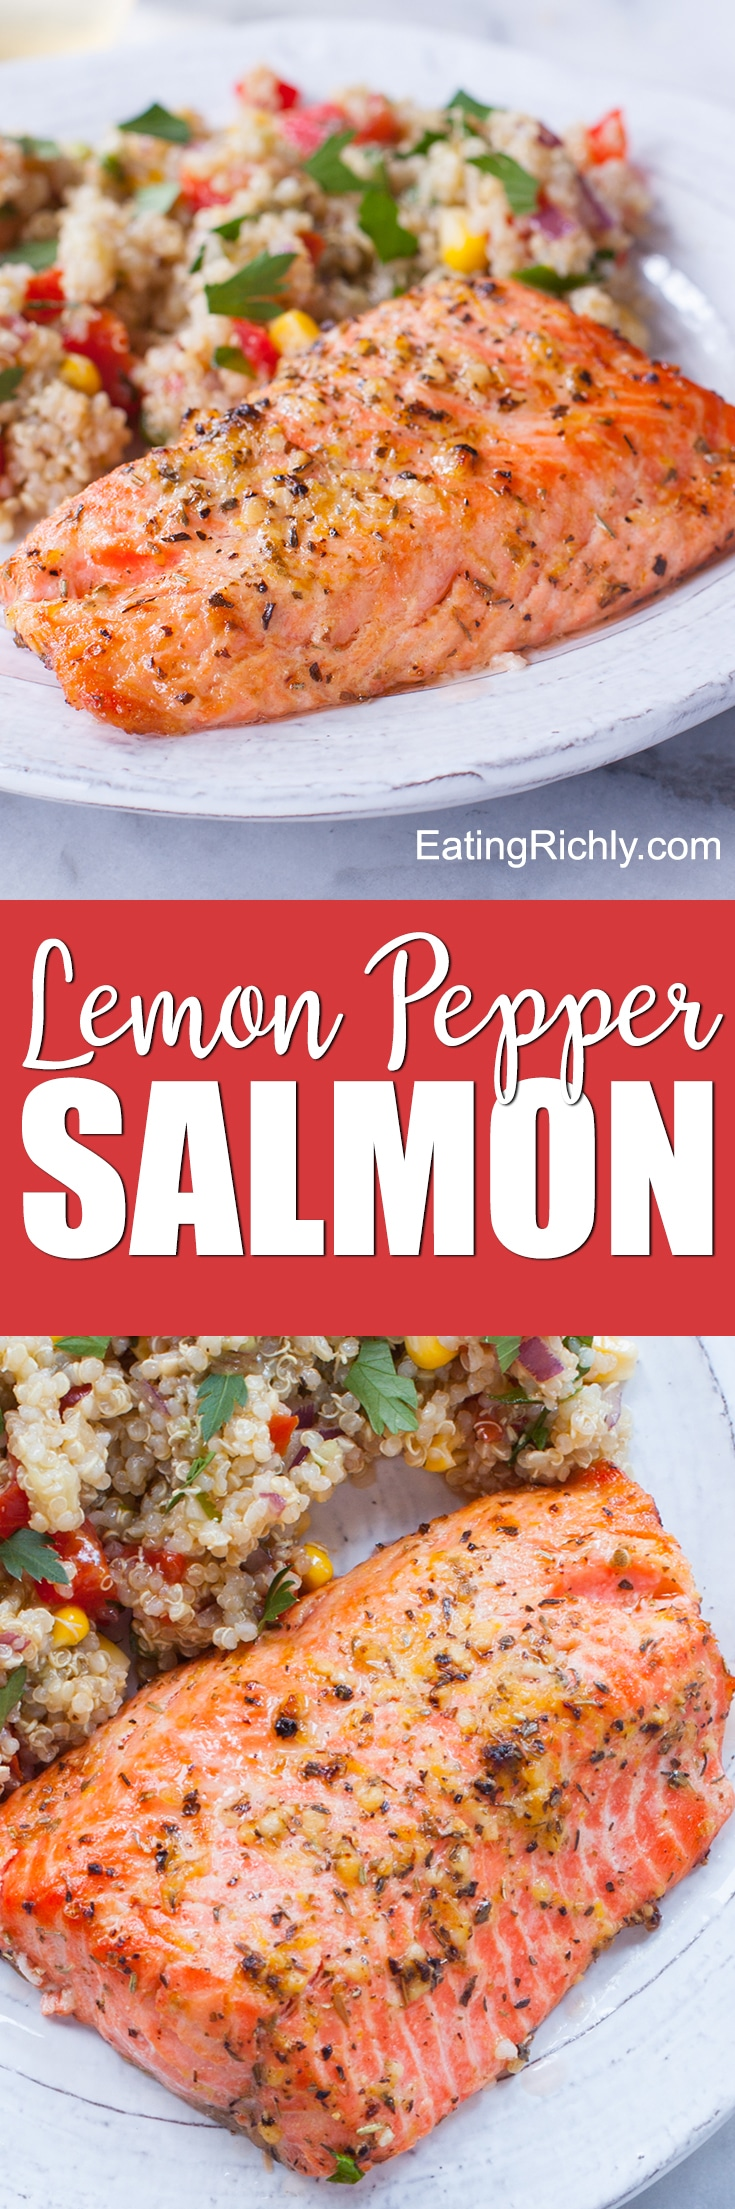 Healthy Lemon Pepper Salmon Recipe